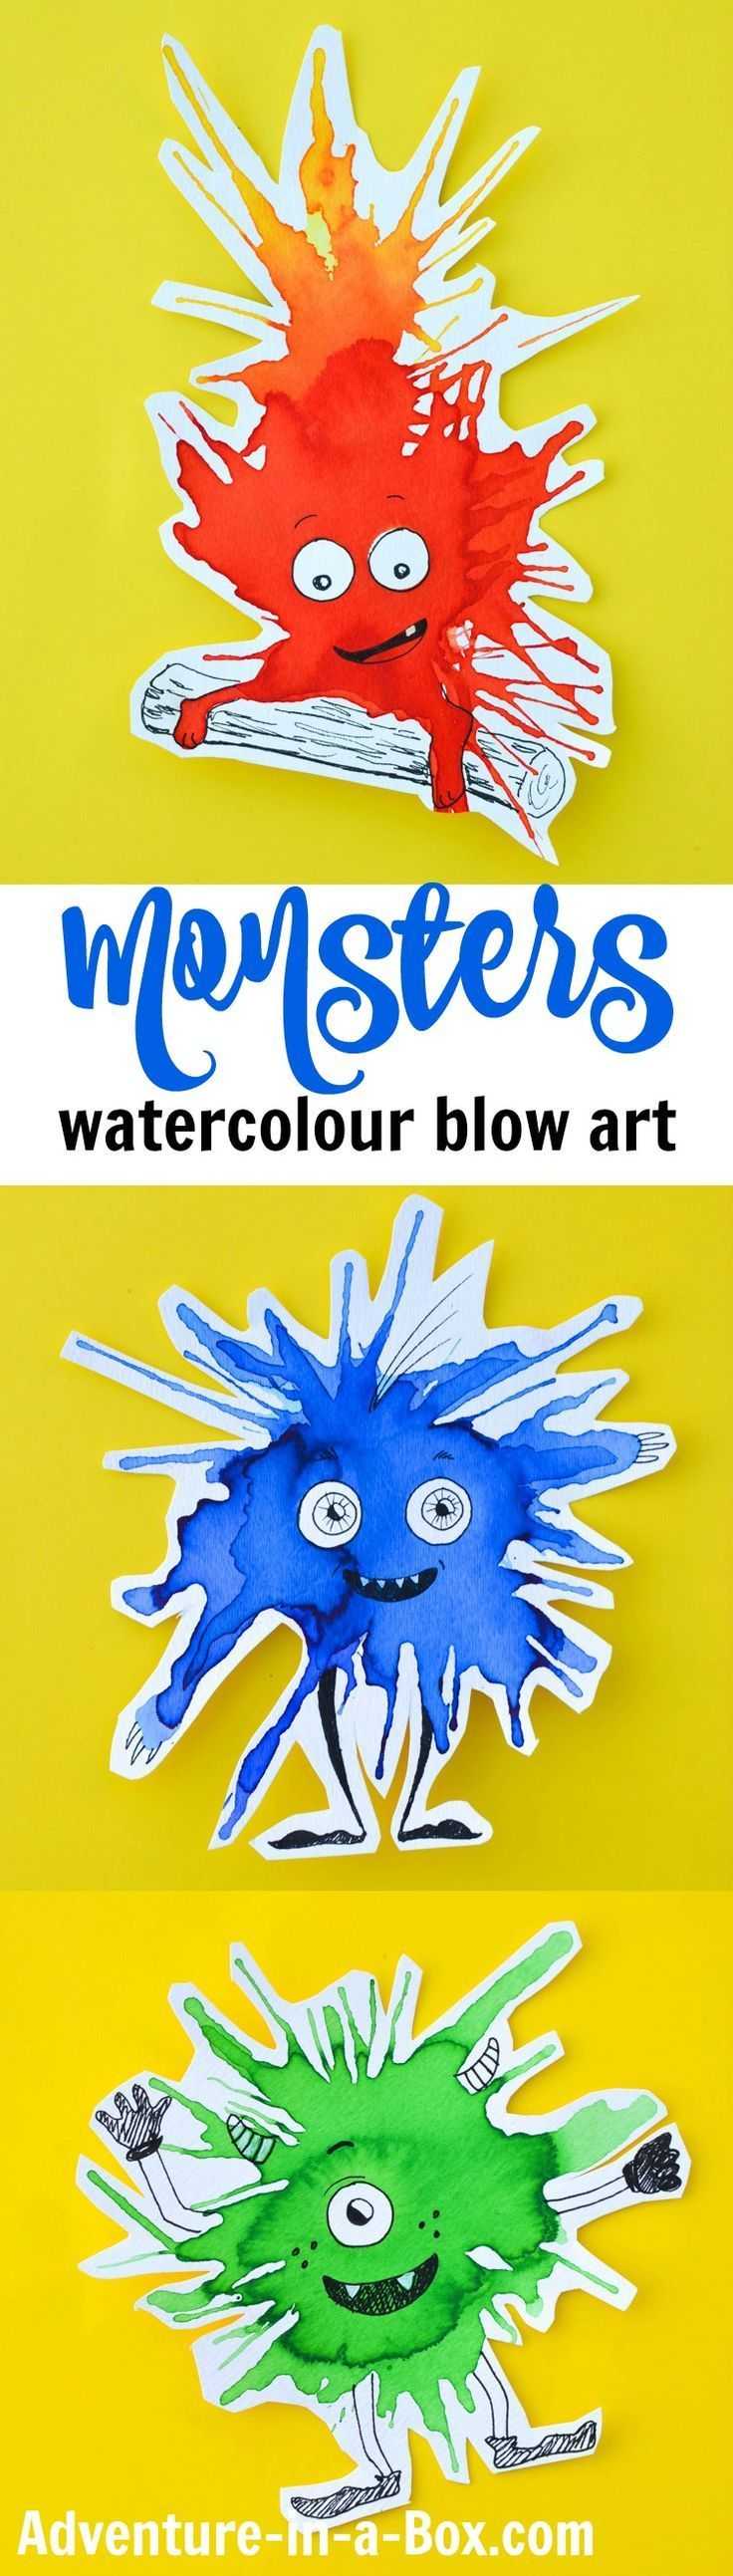 Fun little monster art project for kids using watercolors.